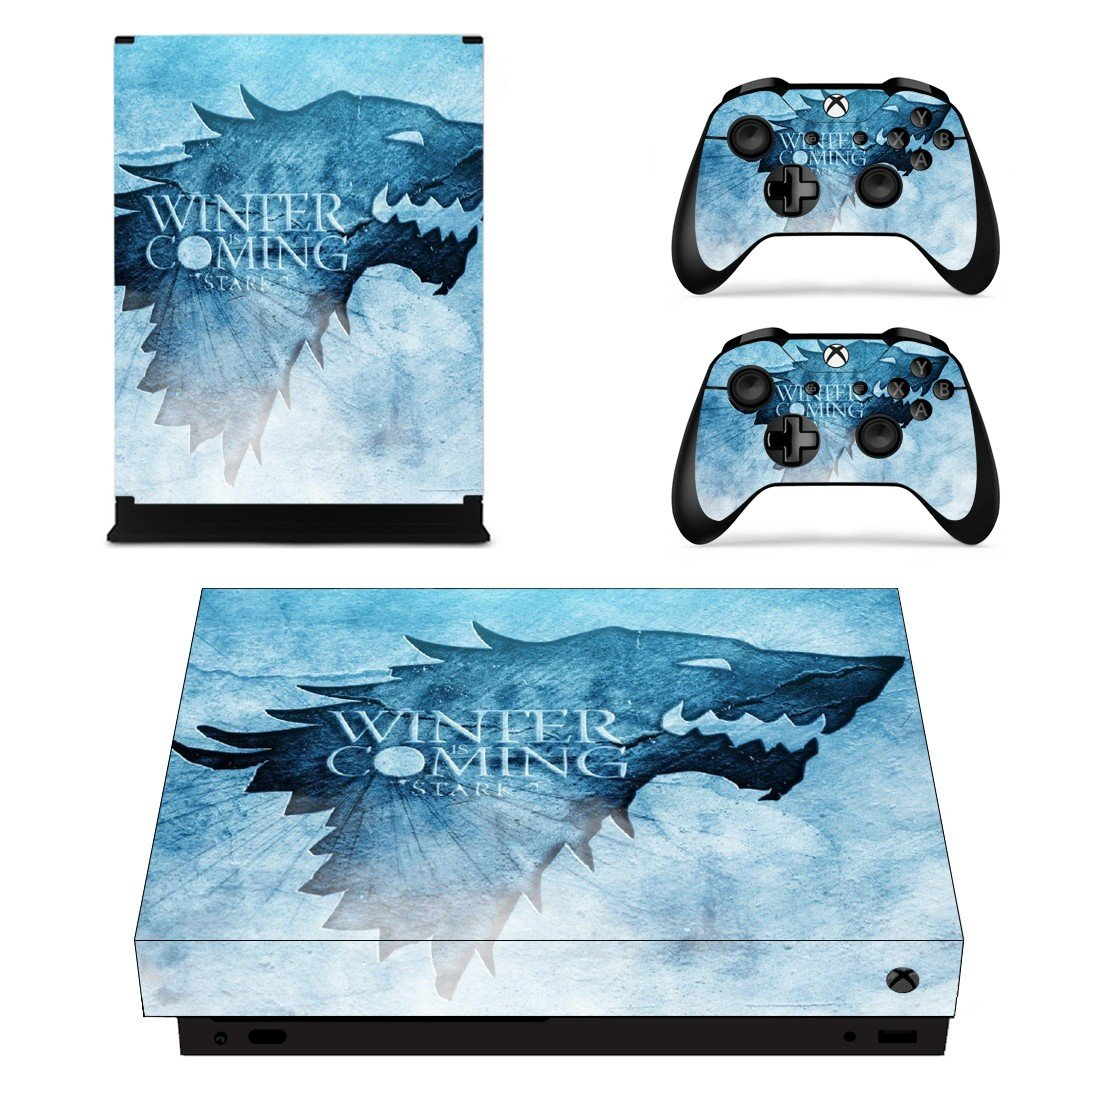 Game of Thrones decal skin sticker for Xbox One X console and controllers